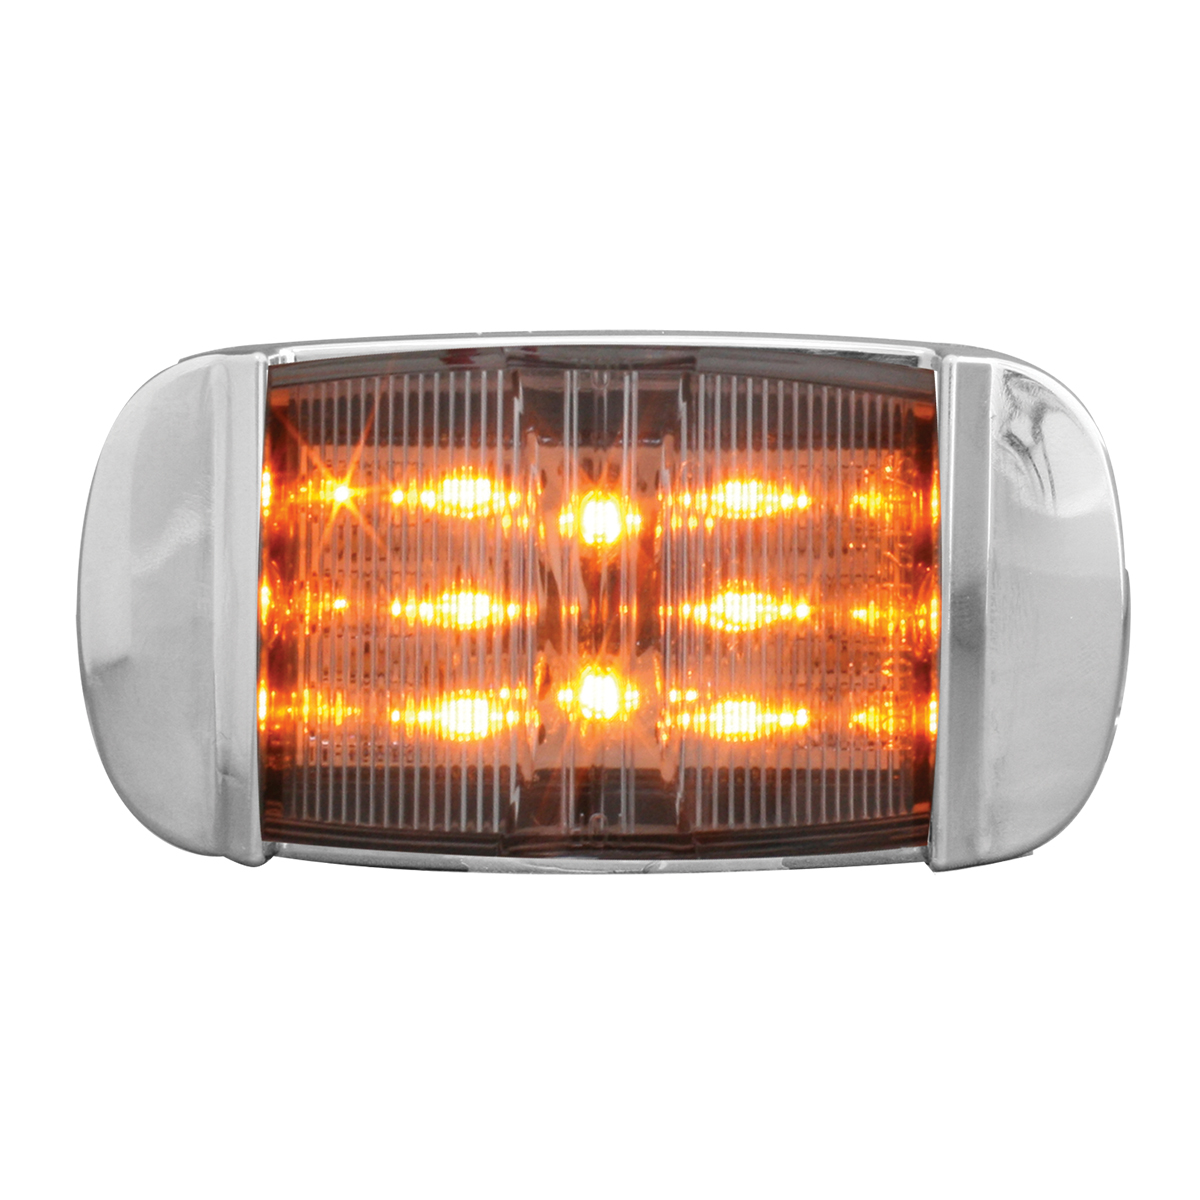 76255 Rectangular Camel Back Wide Angle LED Marker Light w/ Chrome Bezel